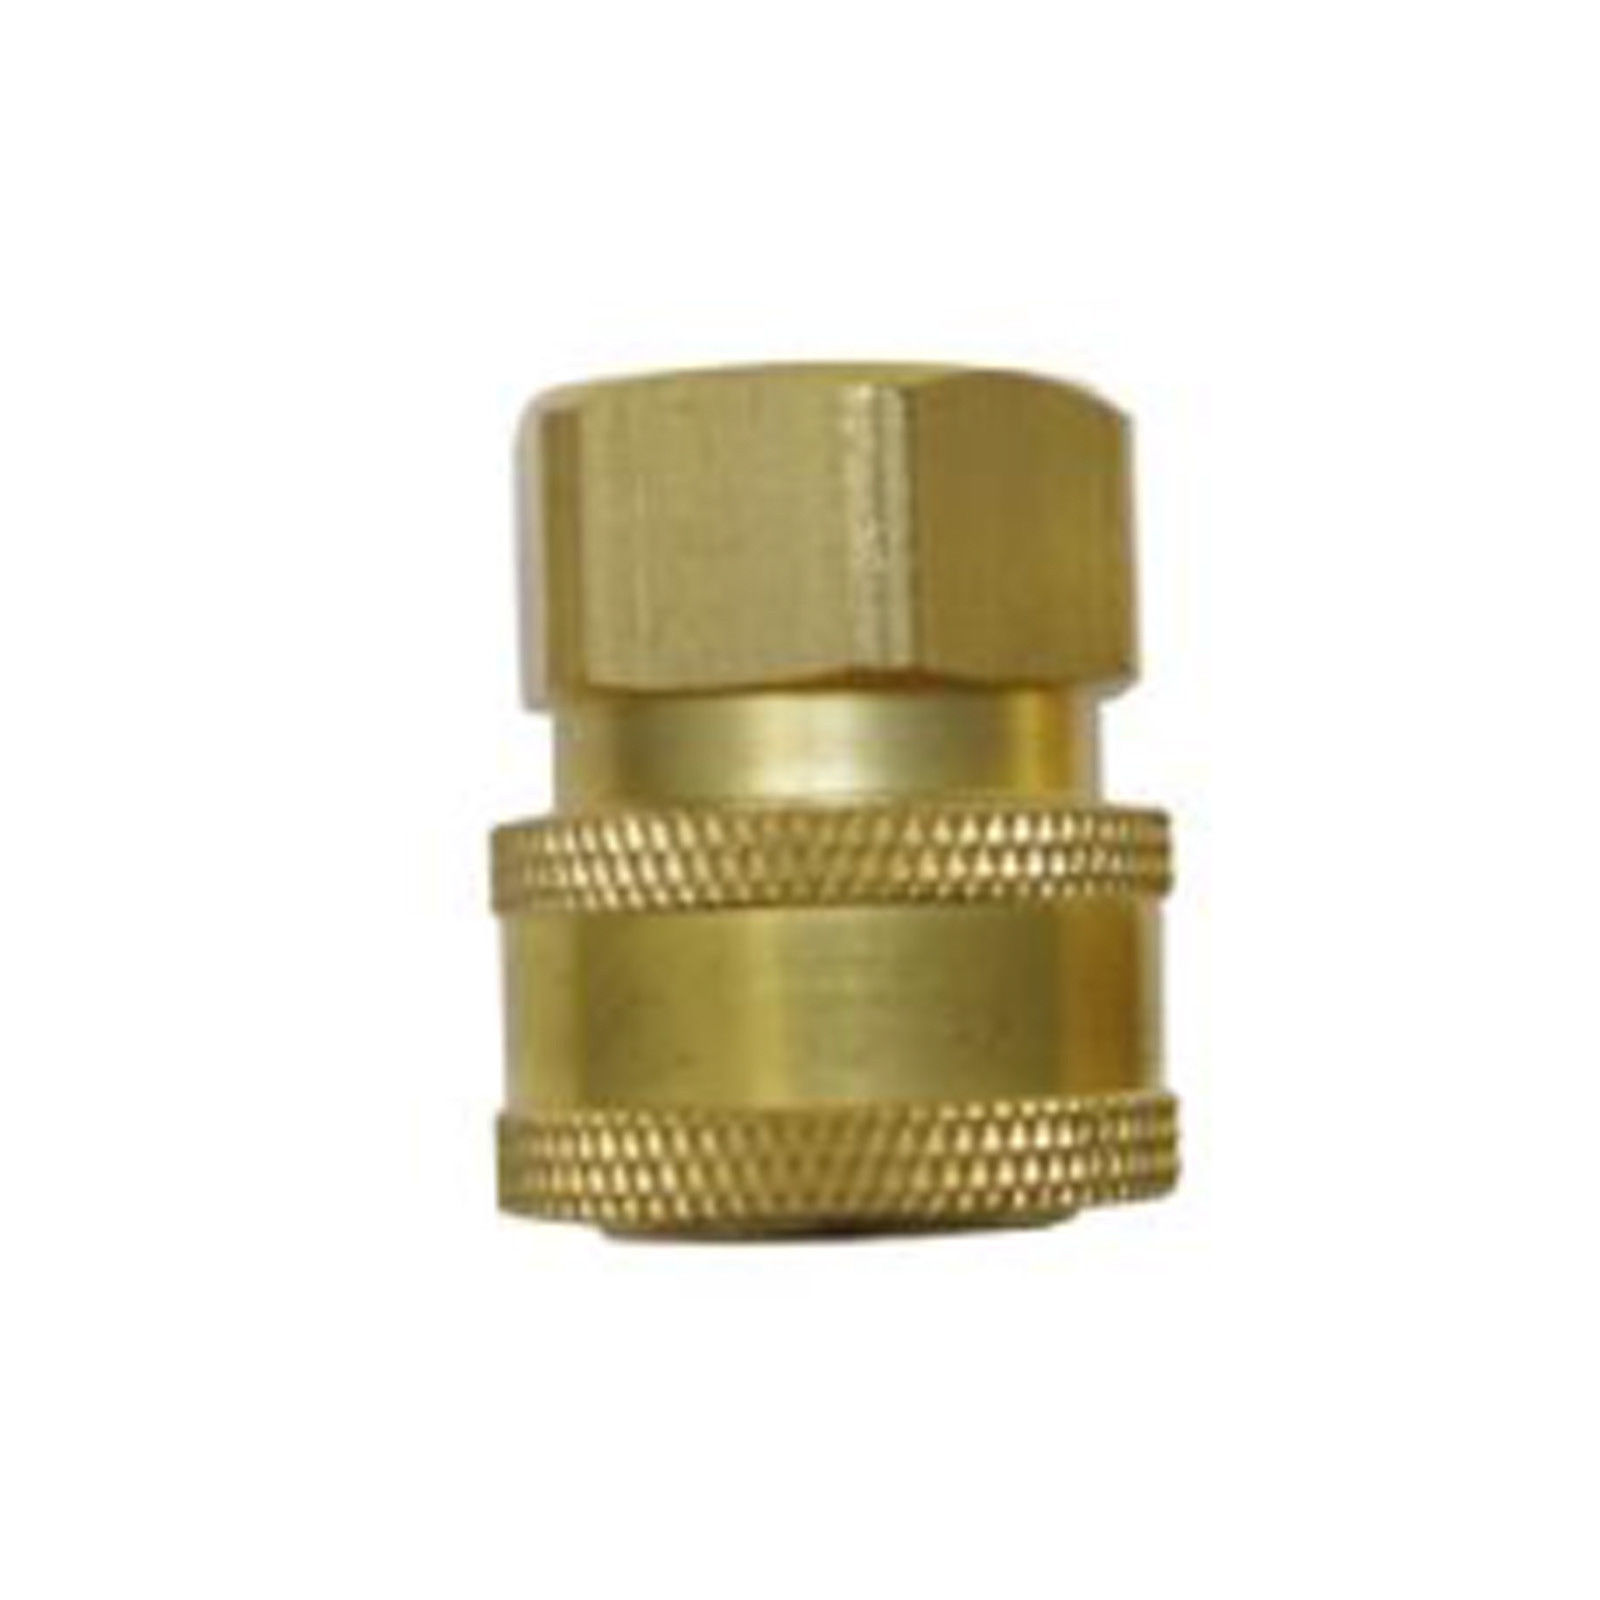 "3/8"" FEMALE QD FITTING"